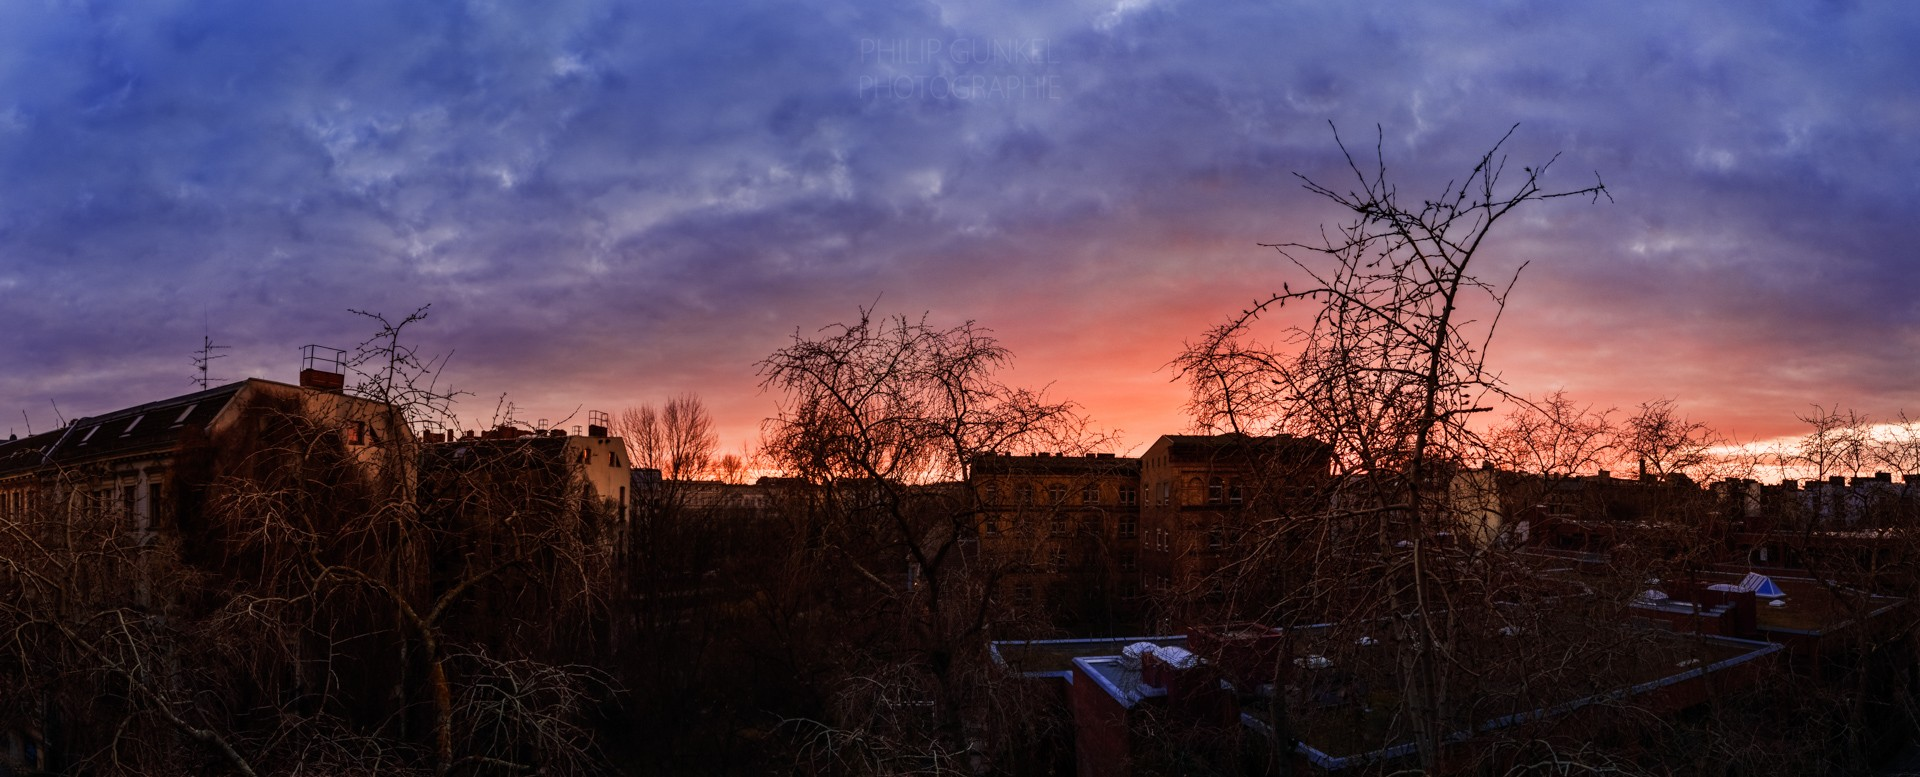 WP_20151206_15_49_57_Rich_LI__highres-Pano